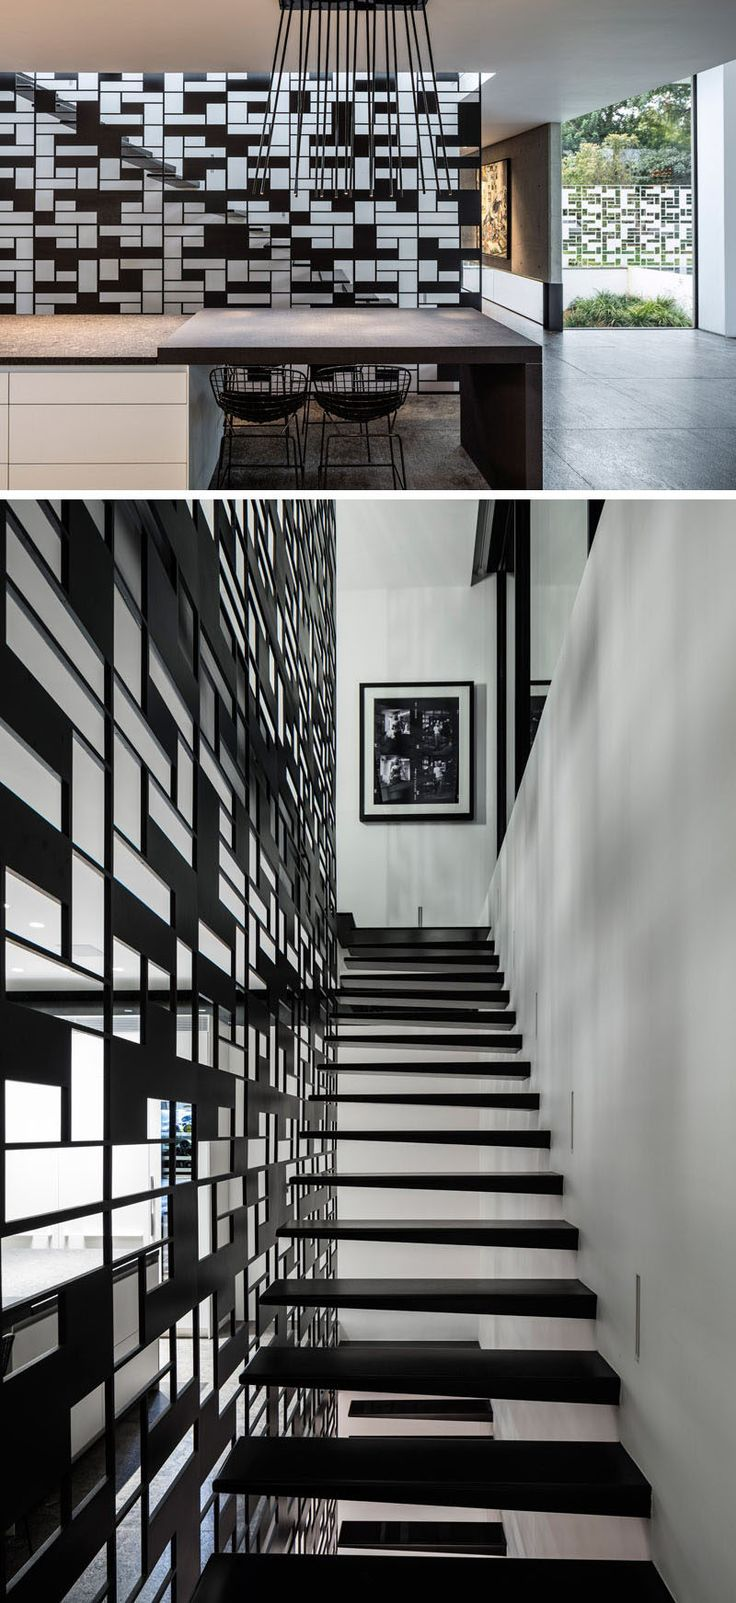 The black metal safety railing protecting one side of the staircase matches the design of a white fence that surrounds the house, creating continuity throughout the house and adding extra safety to the stairs.